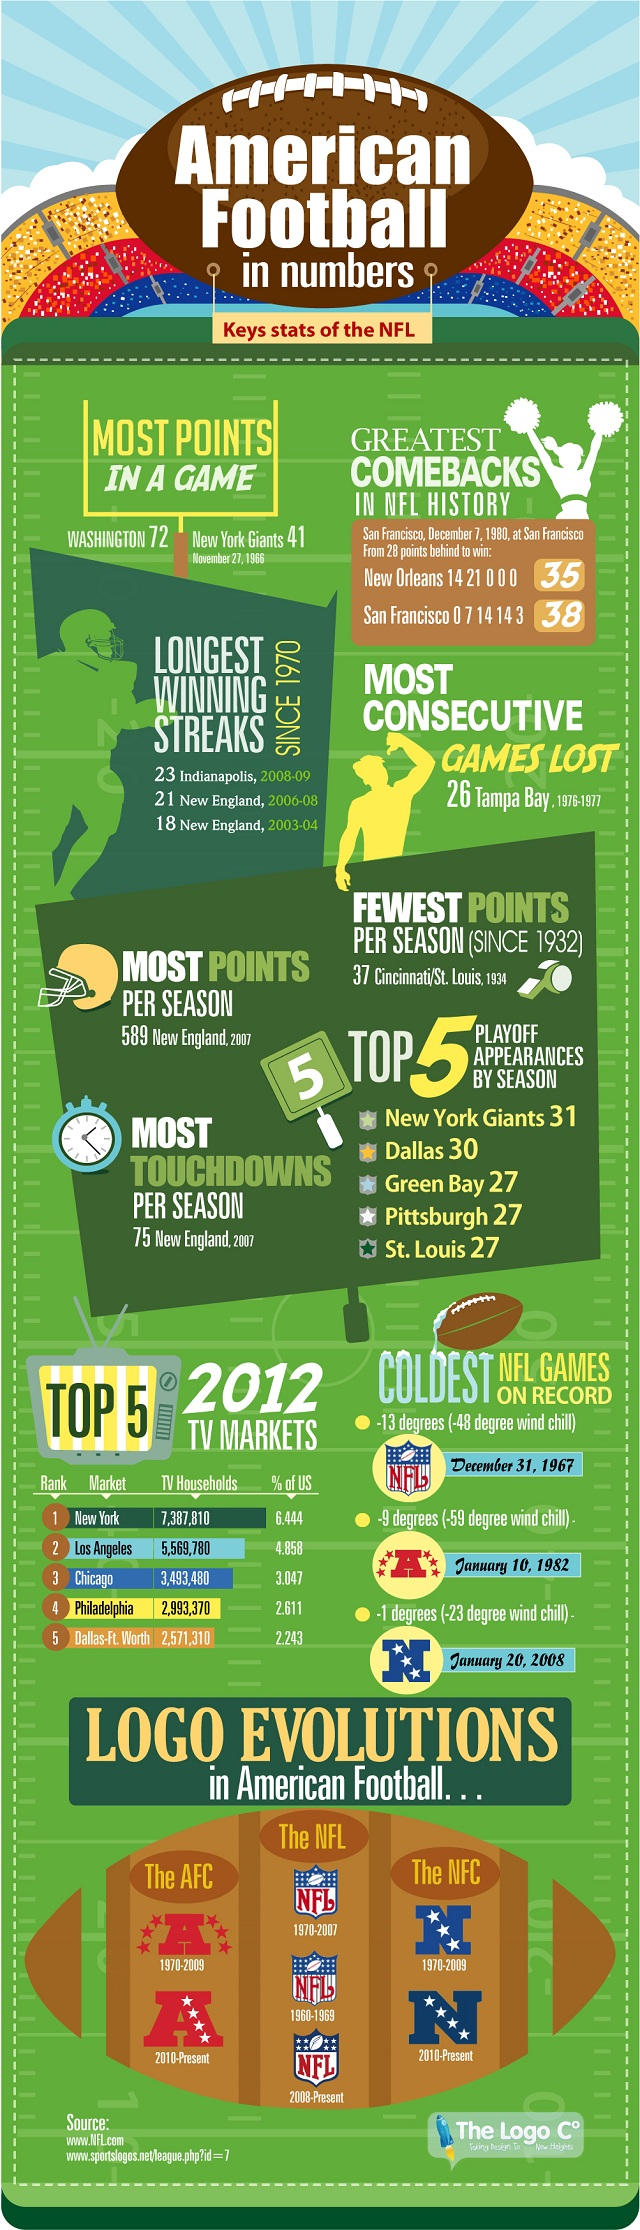 NFL: American Football in Numbers